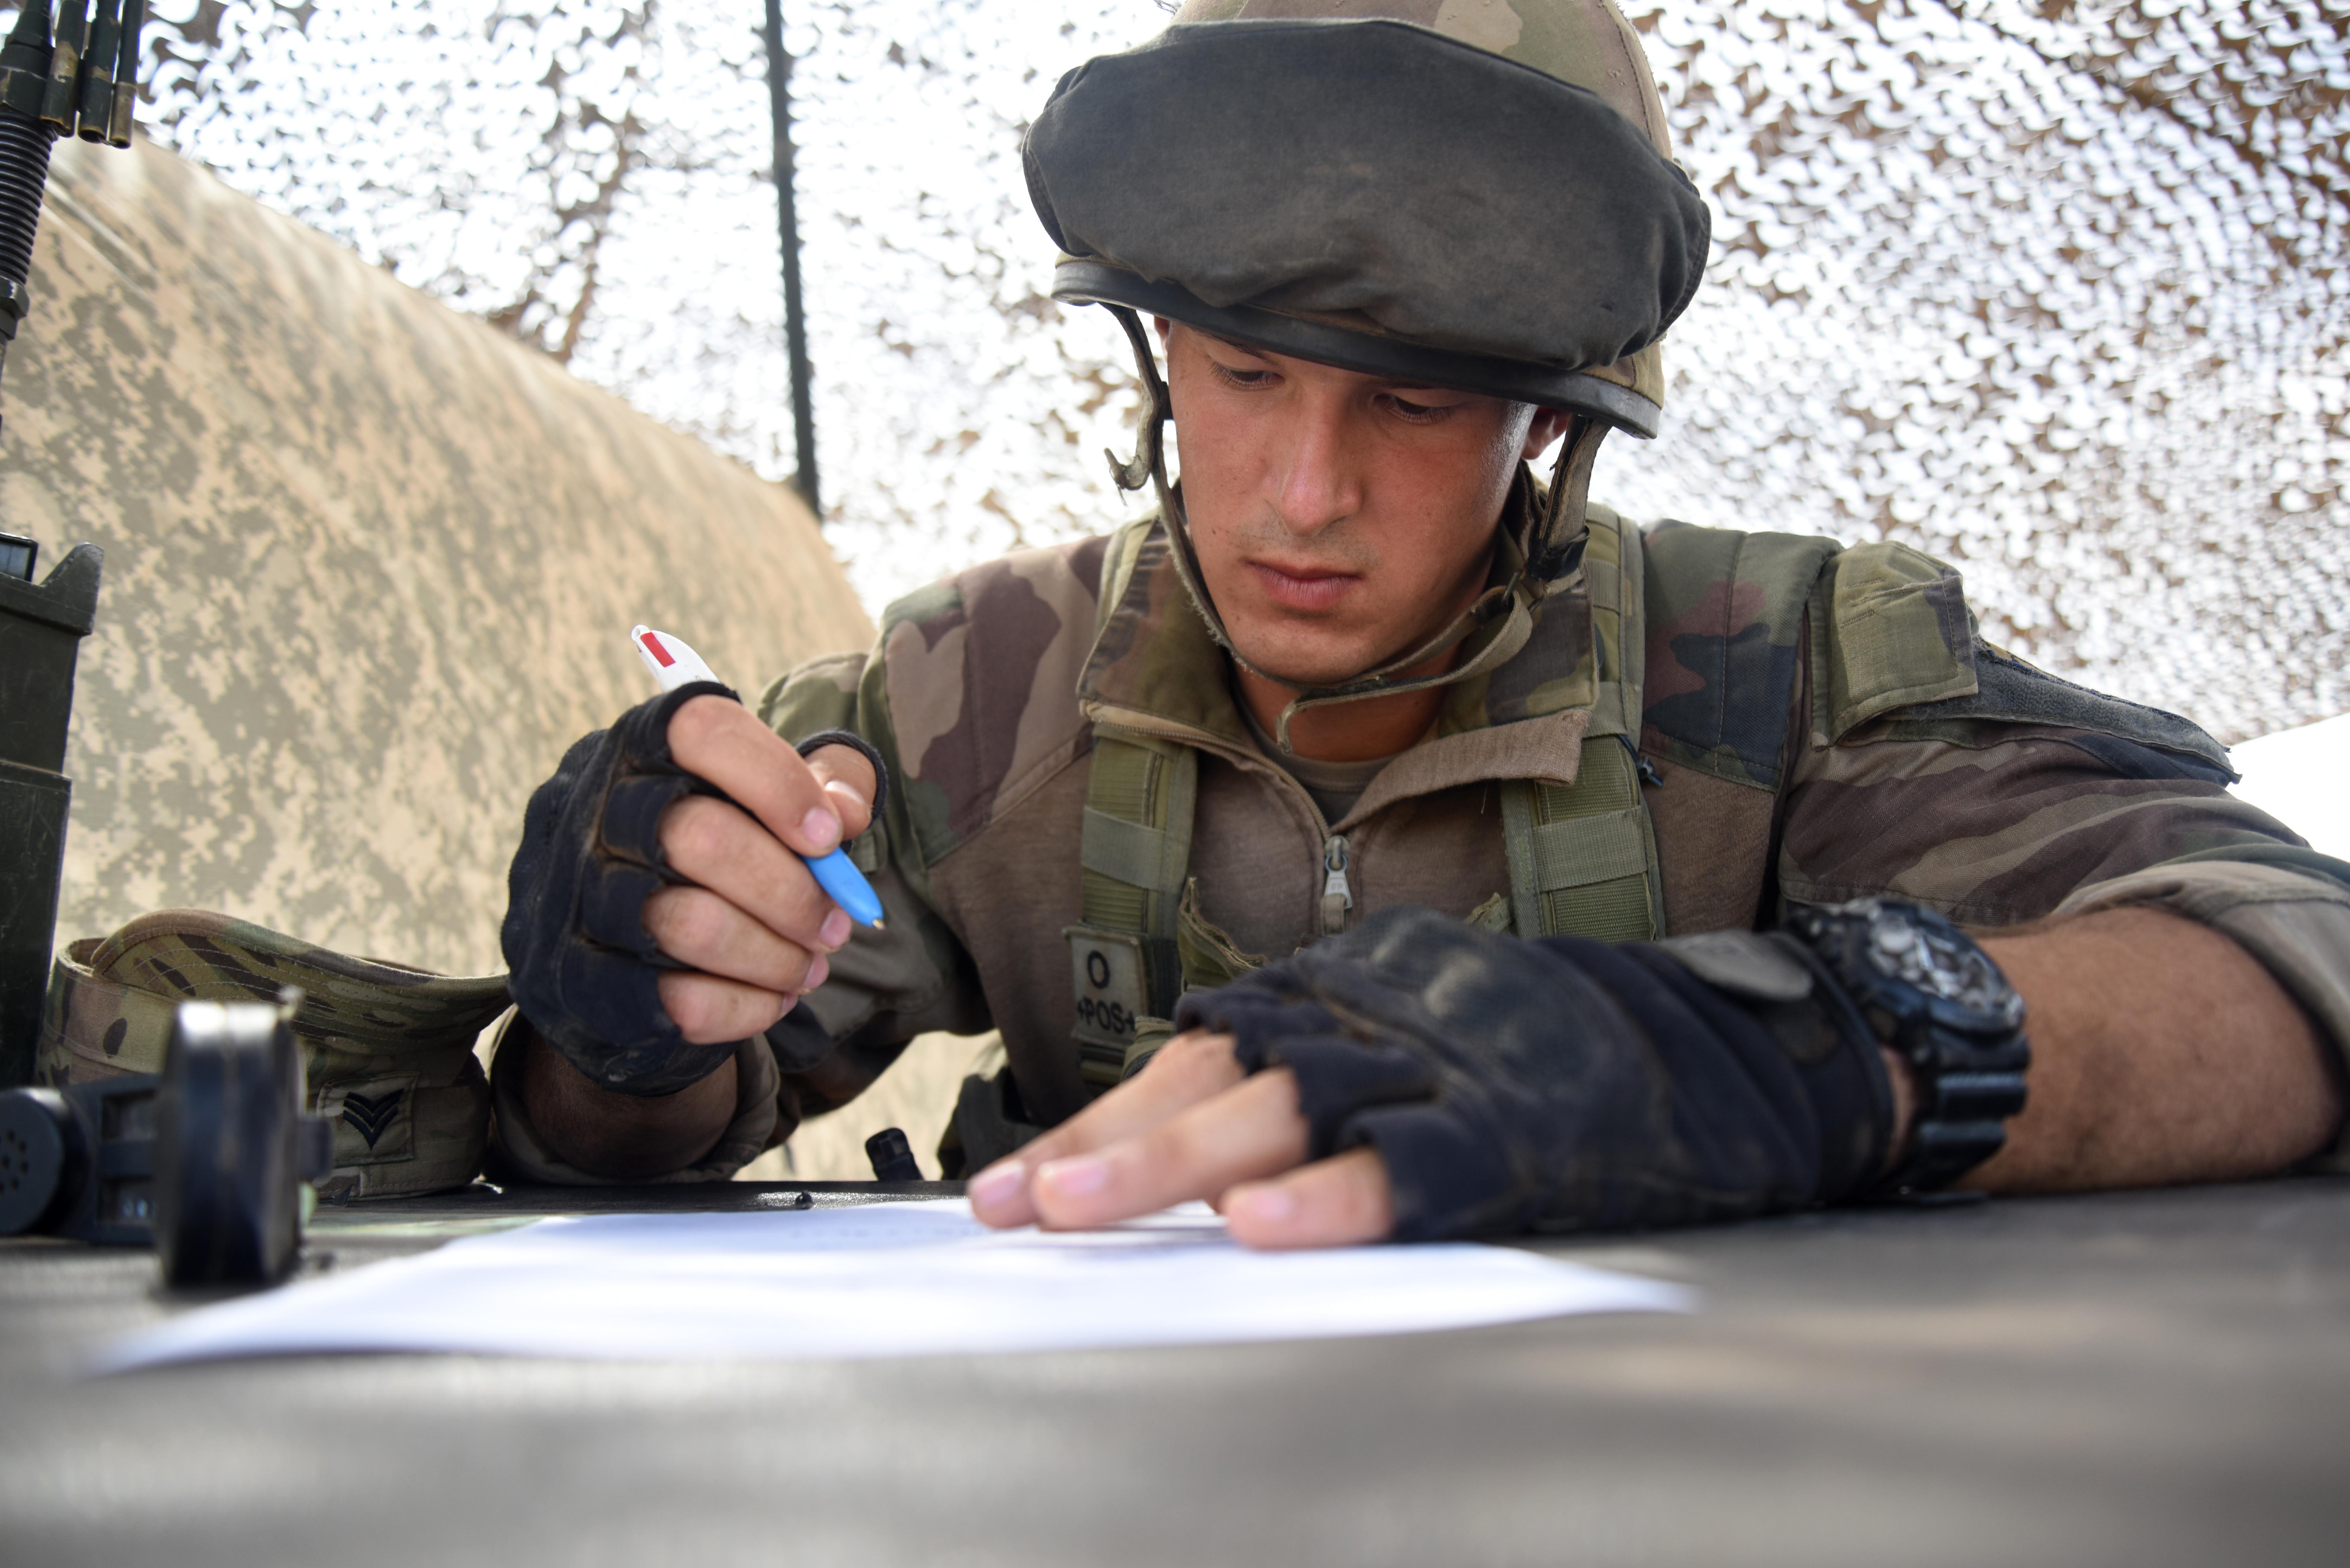 A French Army Soldier completes an activity report March 31, 2016, during the patrolling portion of the EIB course at Camp Lemonnier, Djibouti. Candidates had to create a report based on simulated suspicious activity and call it in to the evaluator. (U.S. Air Force photo by Staff Sgt. Kate Thornton)